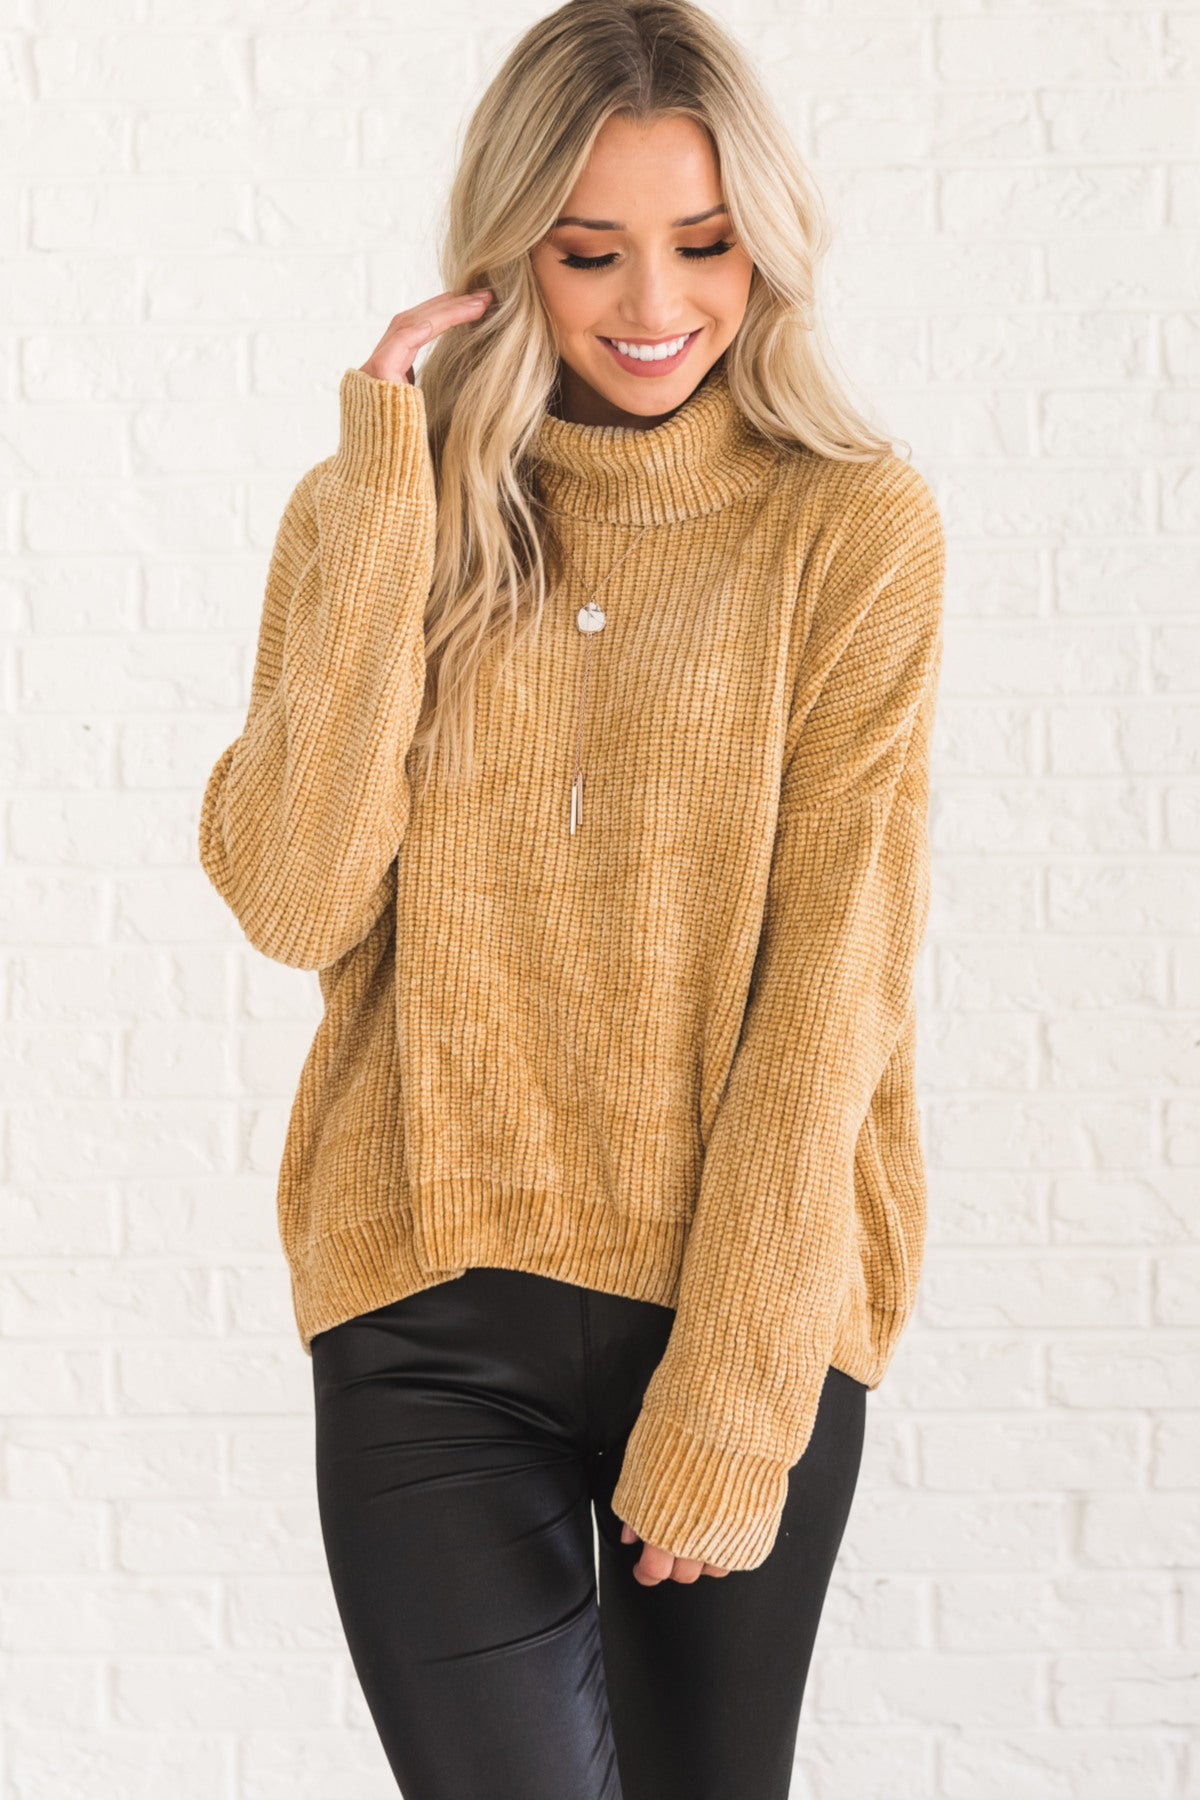 ed79ae8a1c Mustard Yellow Cowl Neck Chenille Soft Knit Sweaters Affordable Online  Boutique